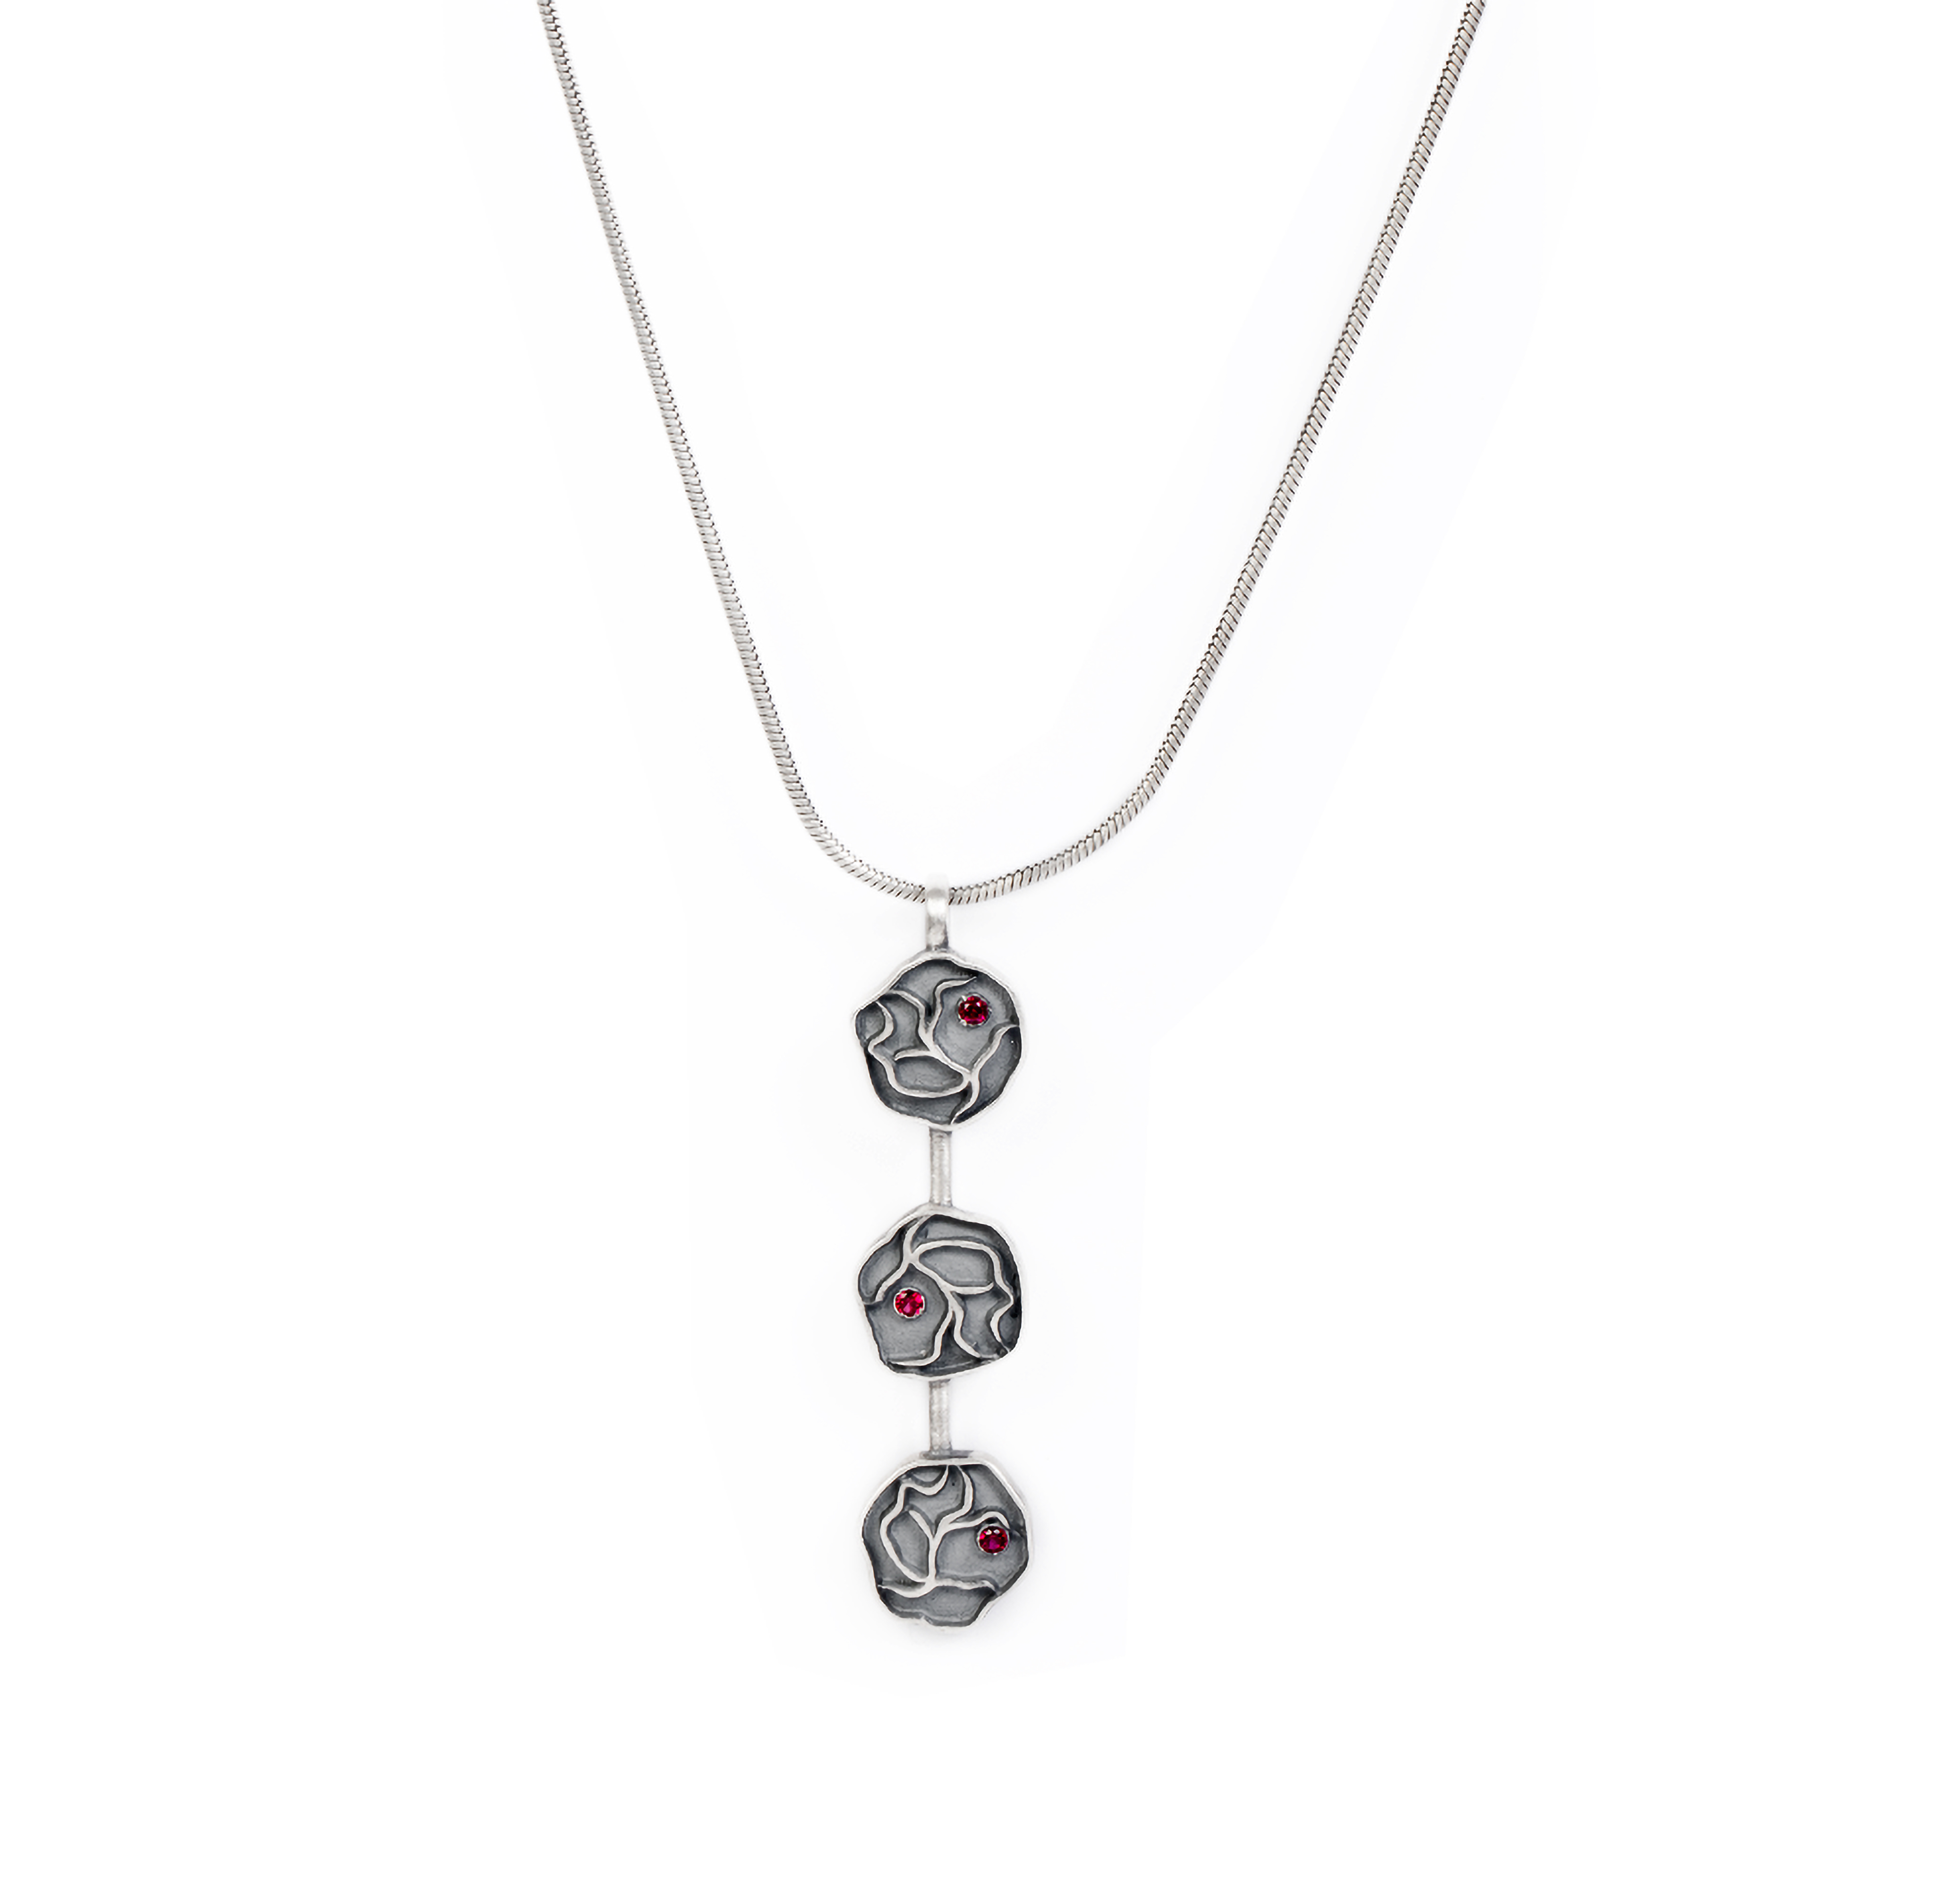 FLAWSOME_Zit Bits Necklace_INR 3400